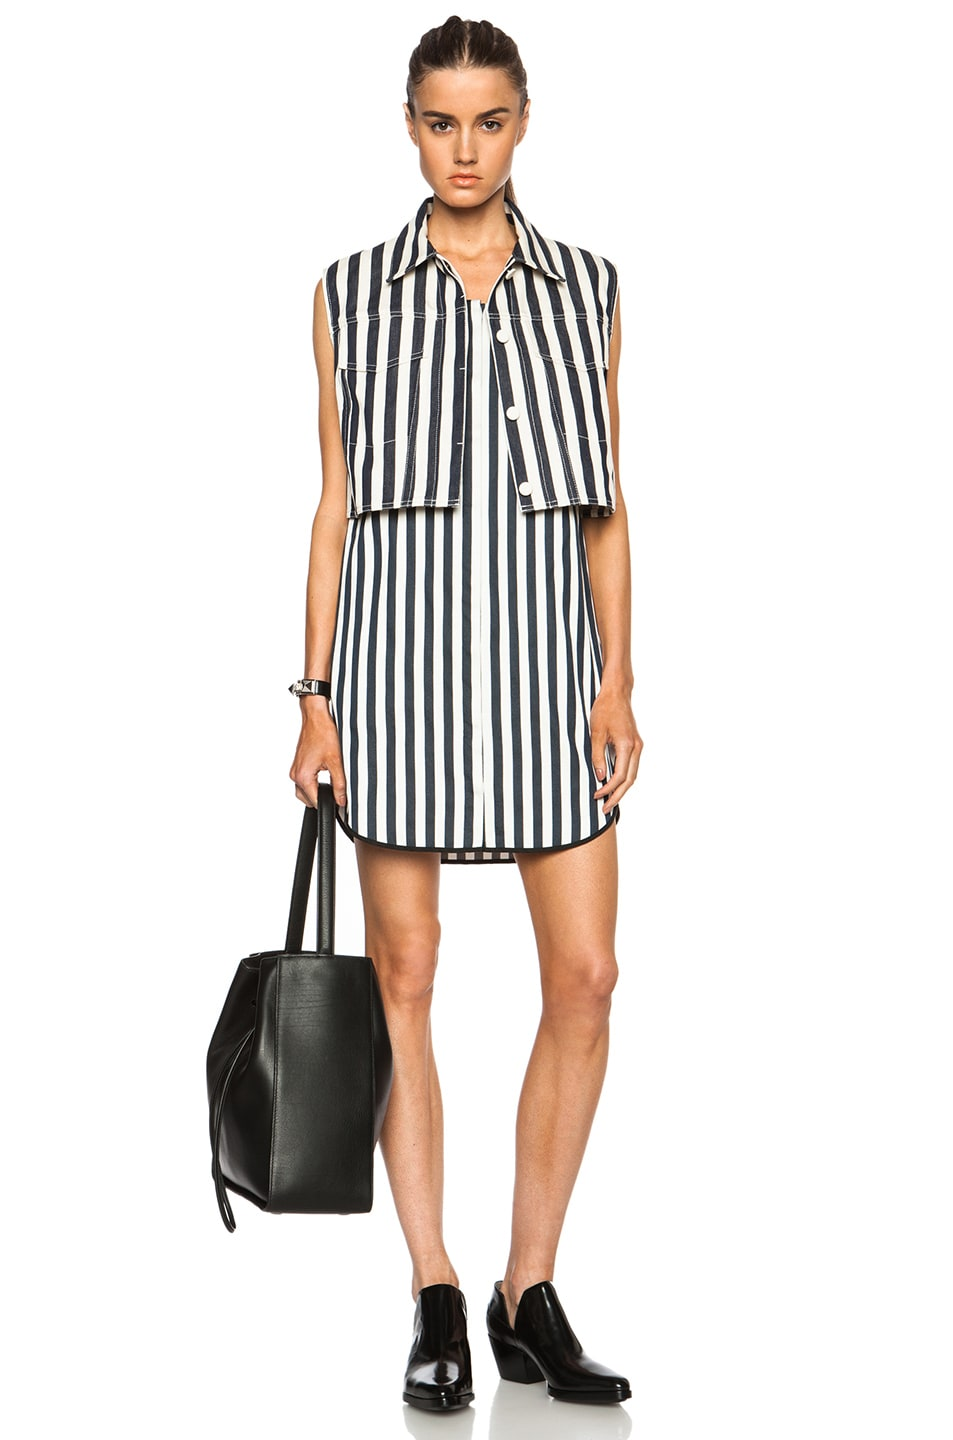 Image 1 of 3.1 phillip lim 2 Piece Dress with Striped Shirting Under Layer in Ivory & Navy